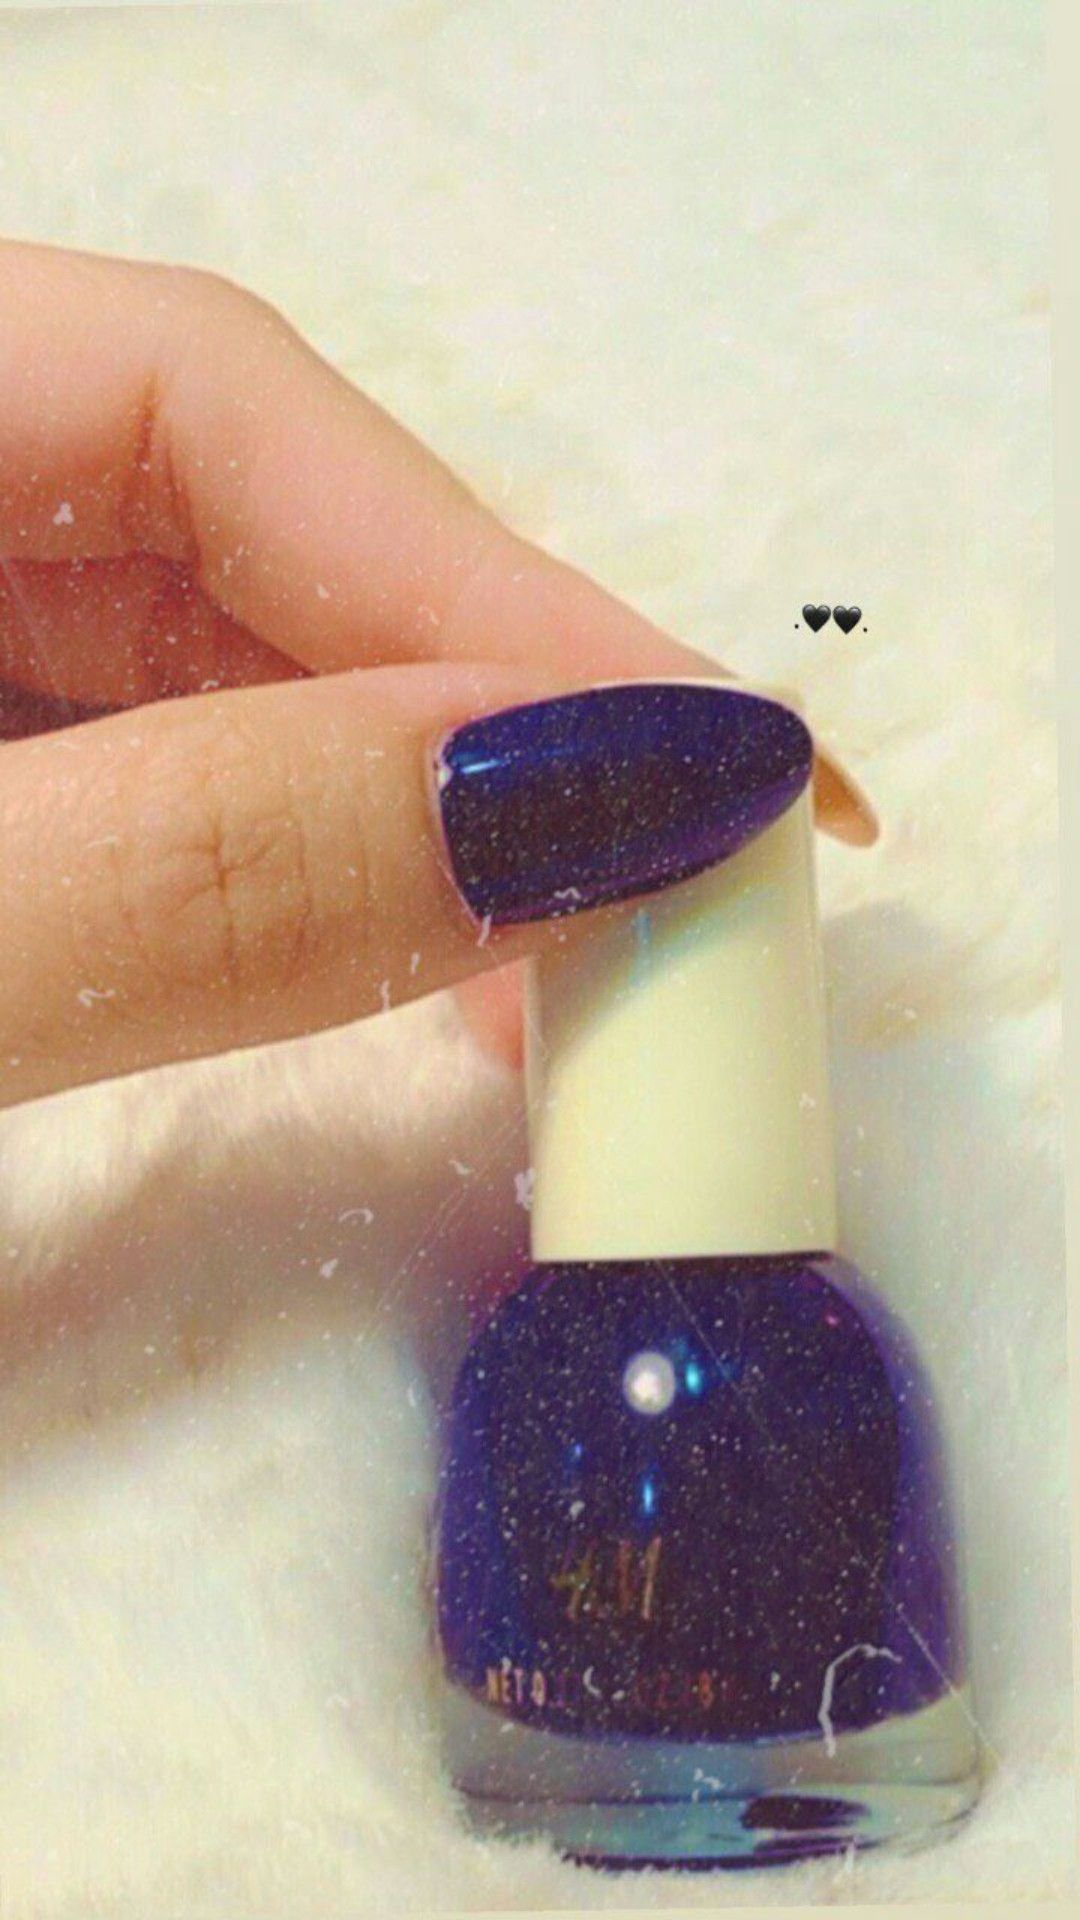 Pin By Ridafarooqfarooq On ايادي بنات كيوت In 2020 Special Nails Girly Pictures Nail Artist